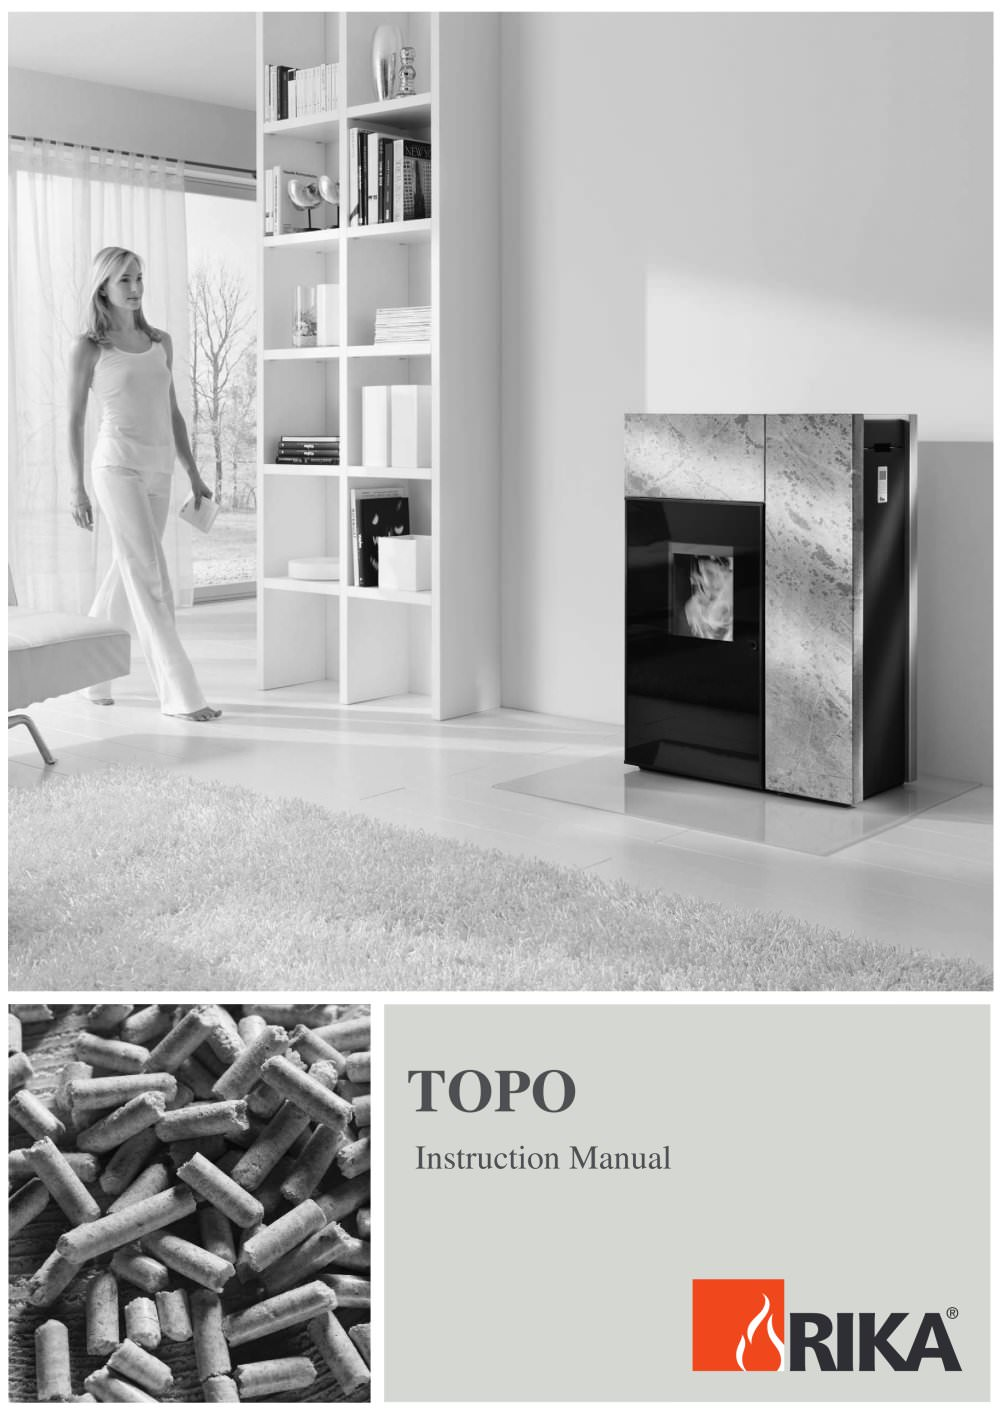 Topo rika pdf catalogues documentation brochures topo 1 36 pages sciox Image collections